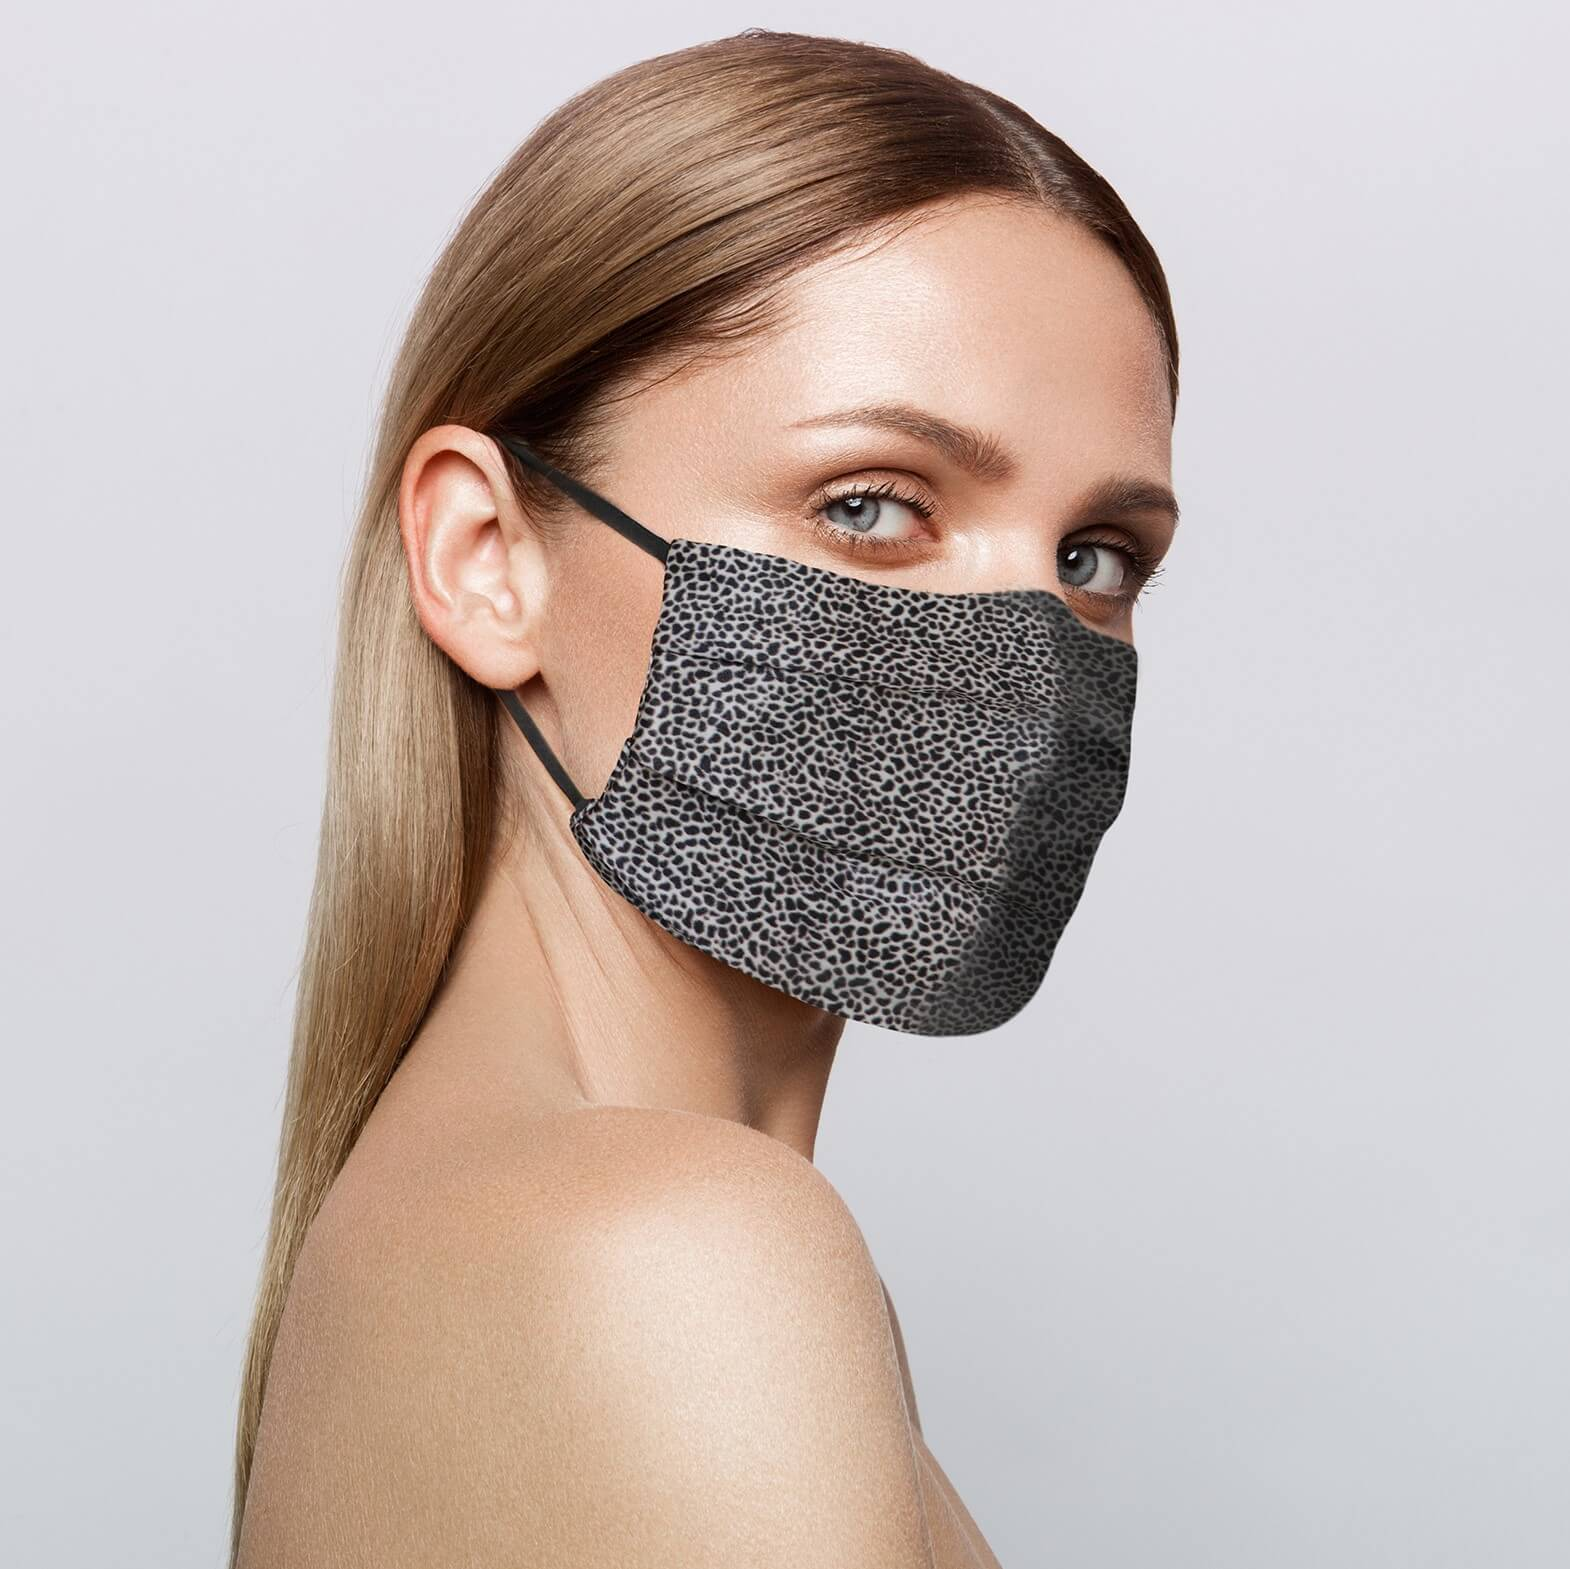 Move over 'maskne' - how to prevent acne caused by wearing a mask